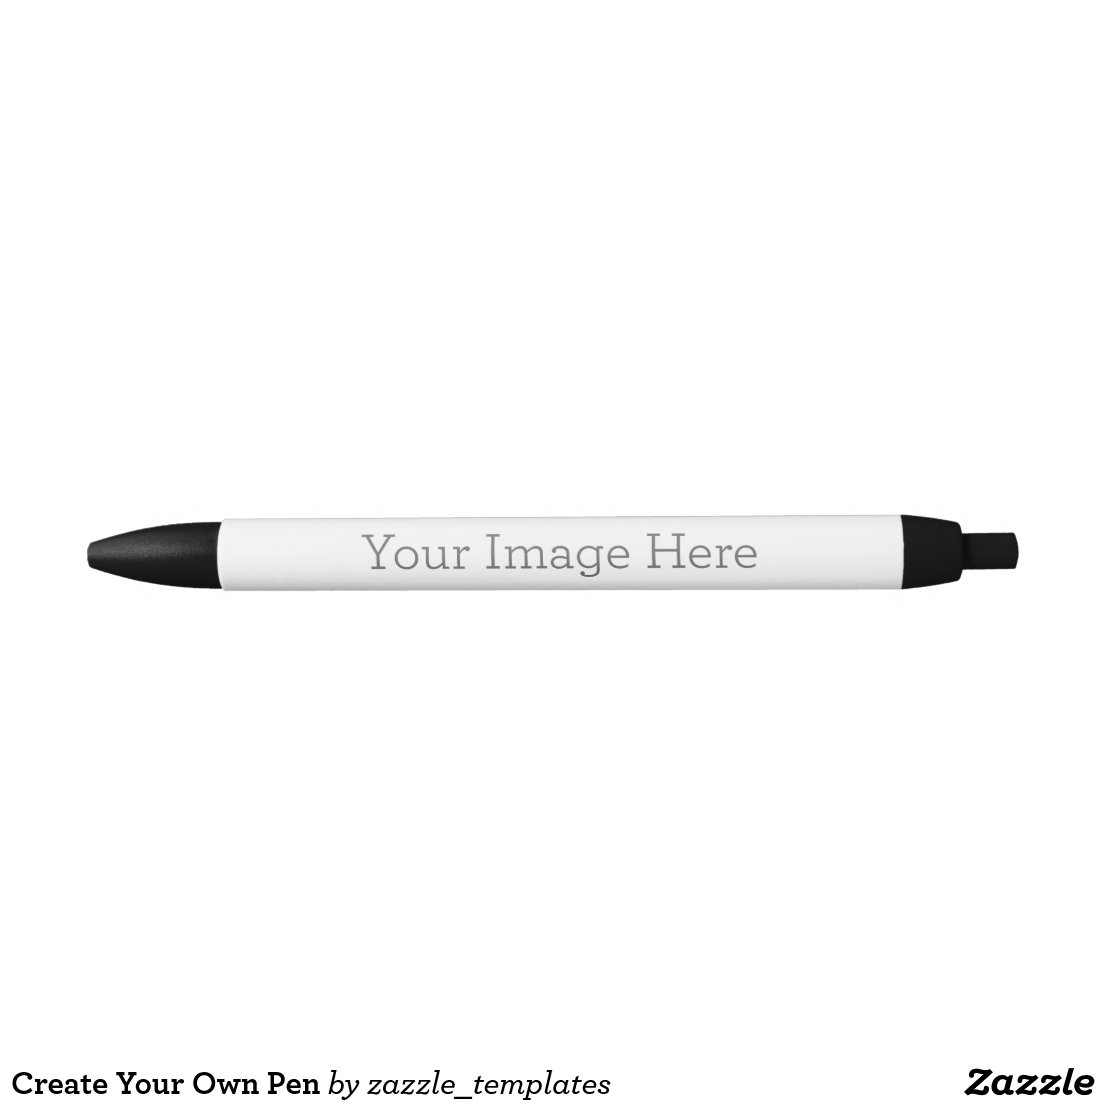 Create Your Own Pen